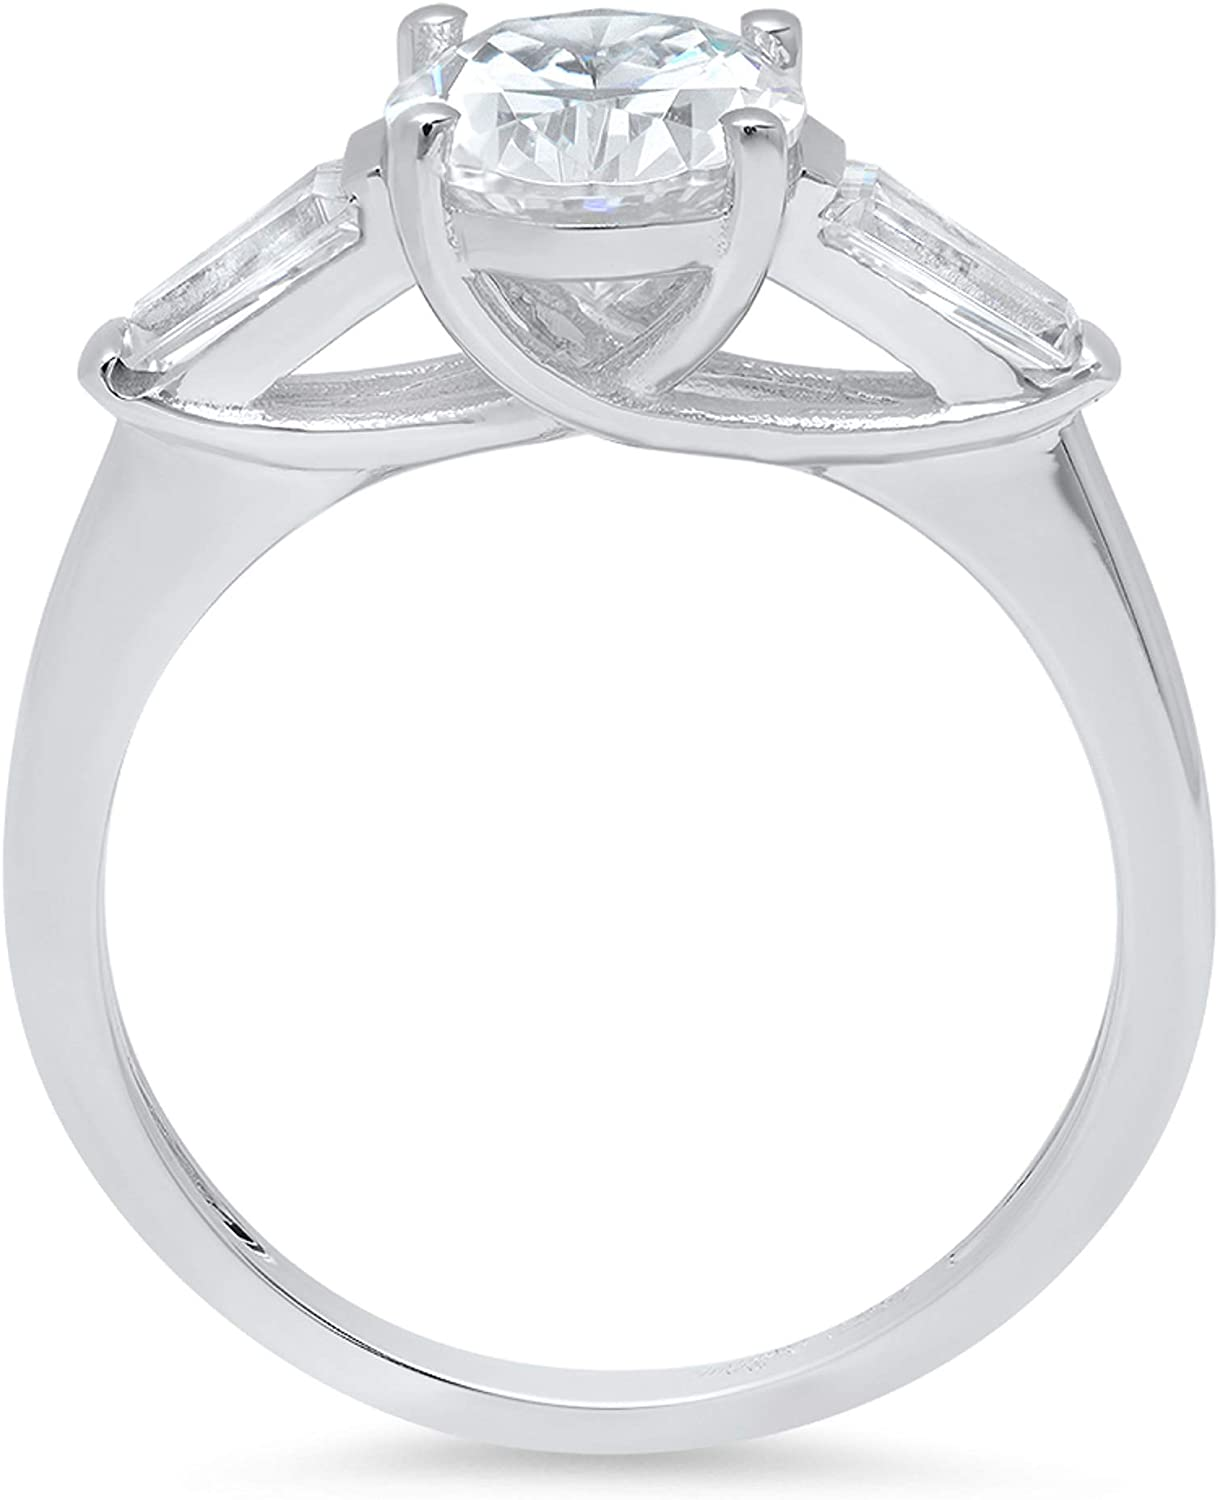 2.47ct Oval Baguette cut 3 stone Solitaire with Accent Genuine White lab created Sapphire Ideal VVS1 D & Simulated Diamond Designer Modern Statement Ring Solid 14k White Gold Clara Pucci